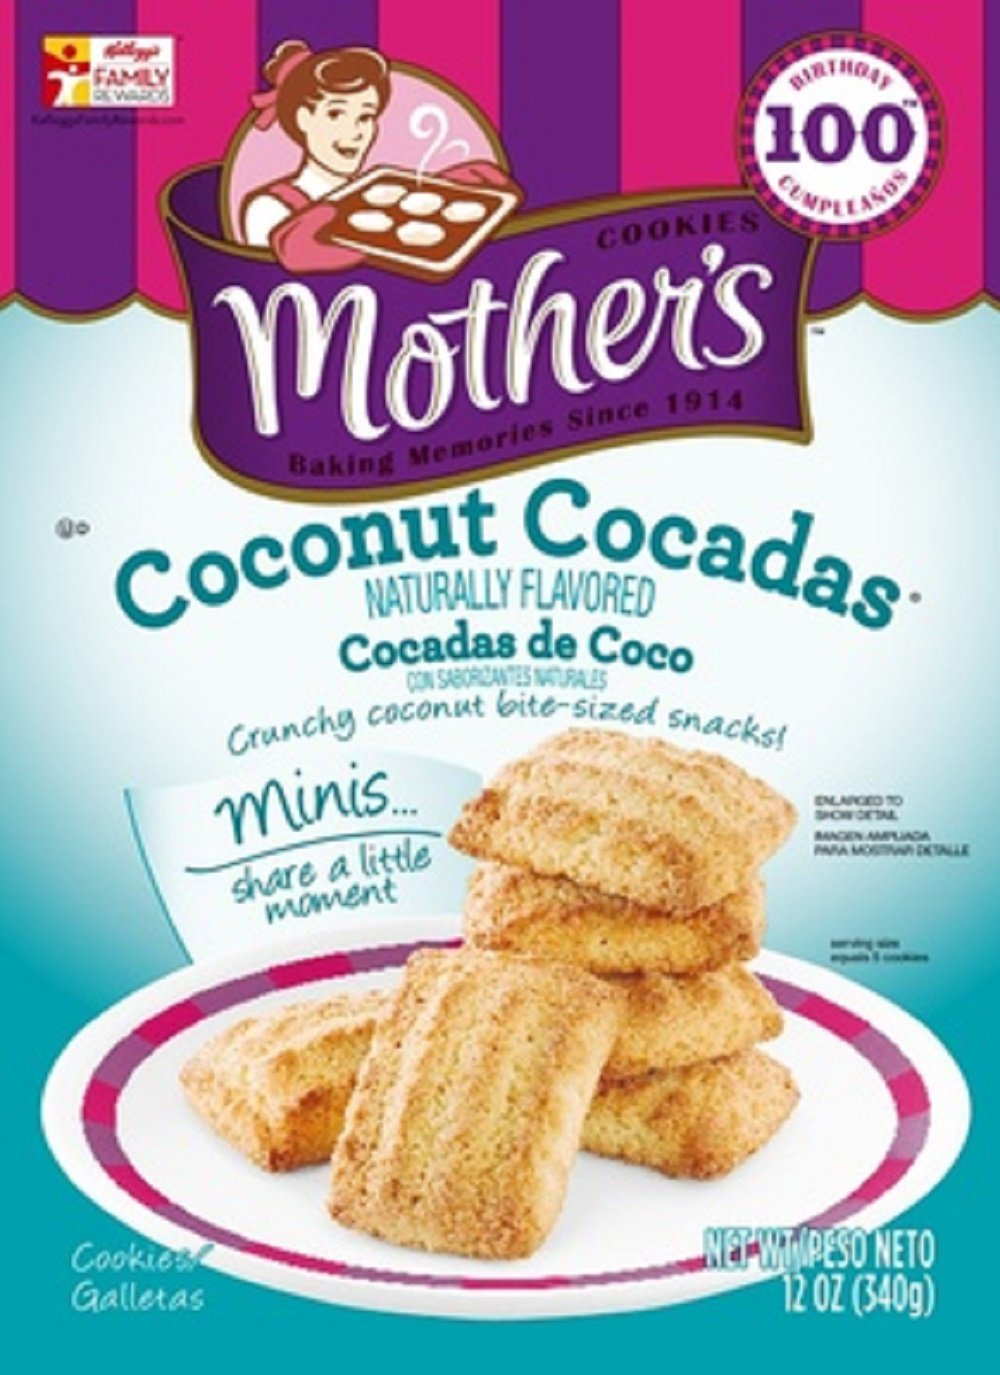 Mother's, Coconut Cocadas Cookies, 12oz Bag (Pack of 4)